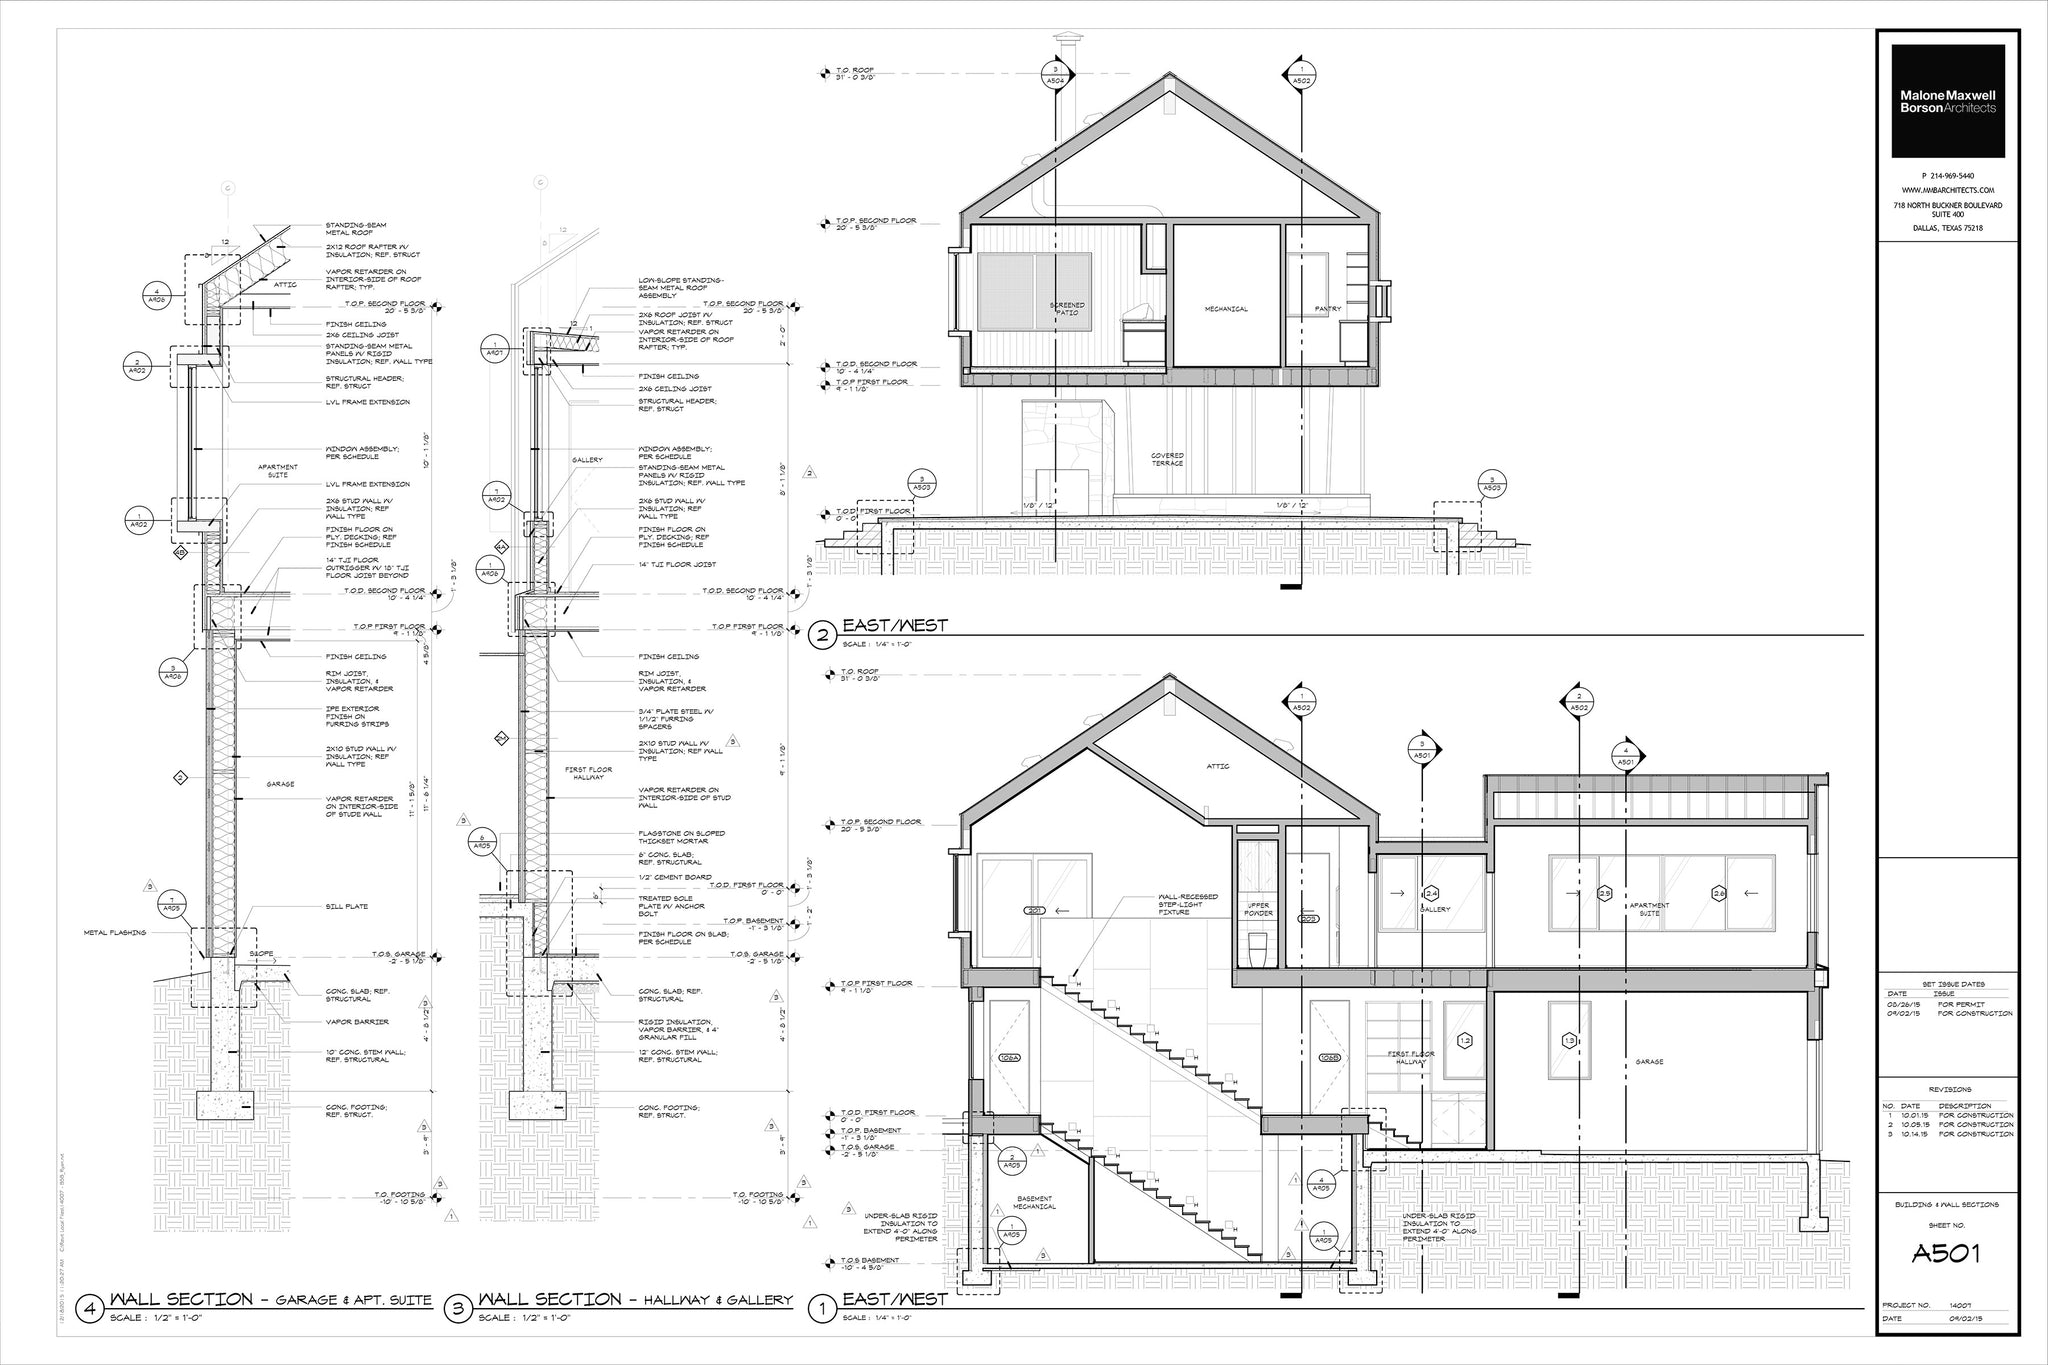 Engineering Drawings and Construction Drawings (B&W)